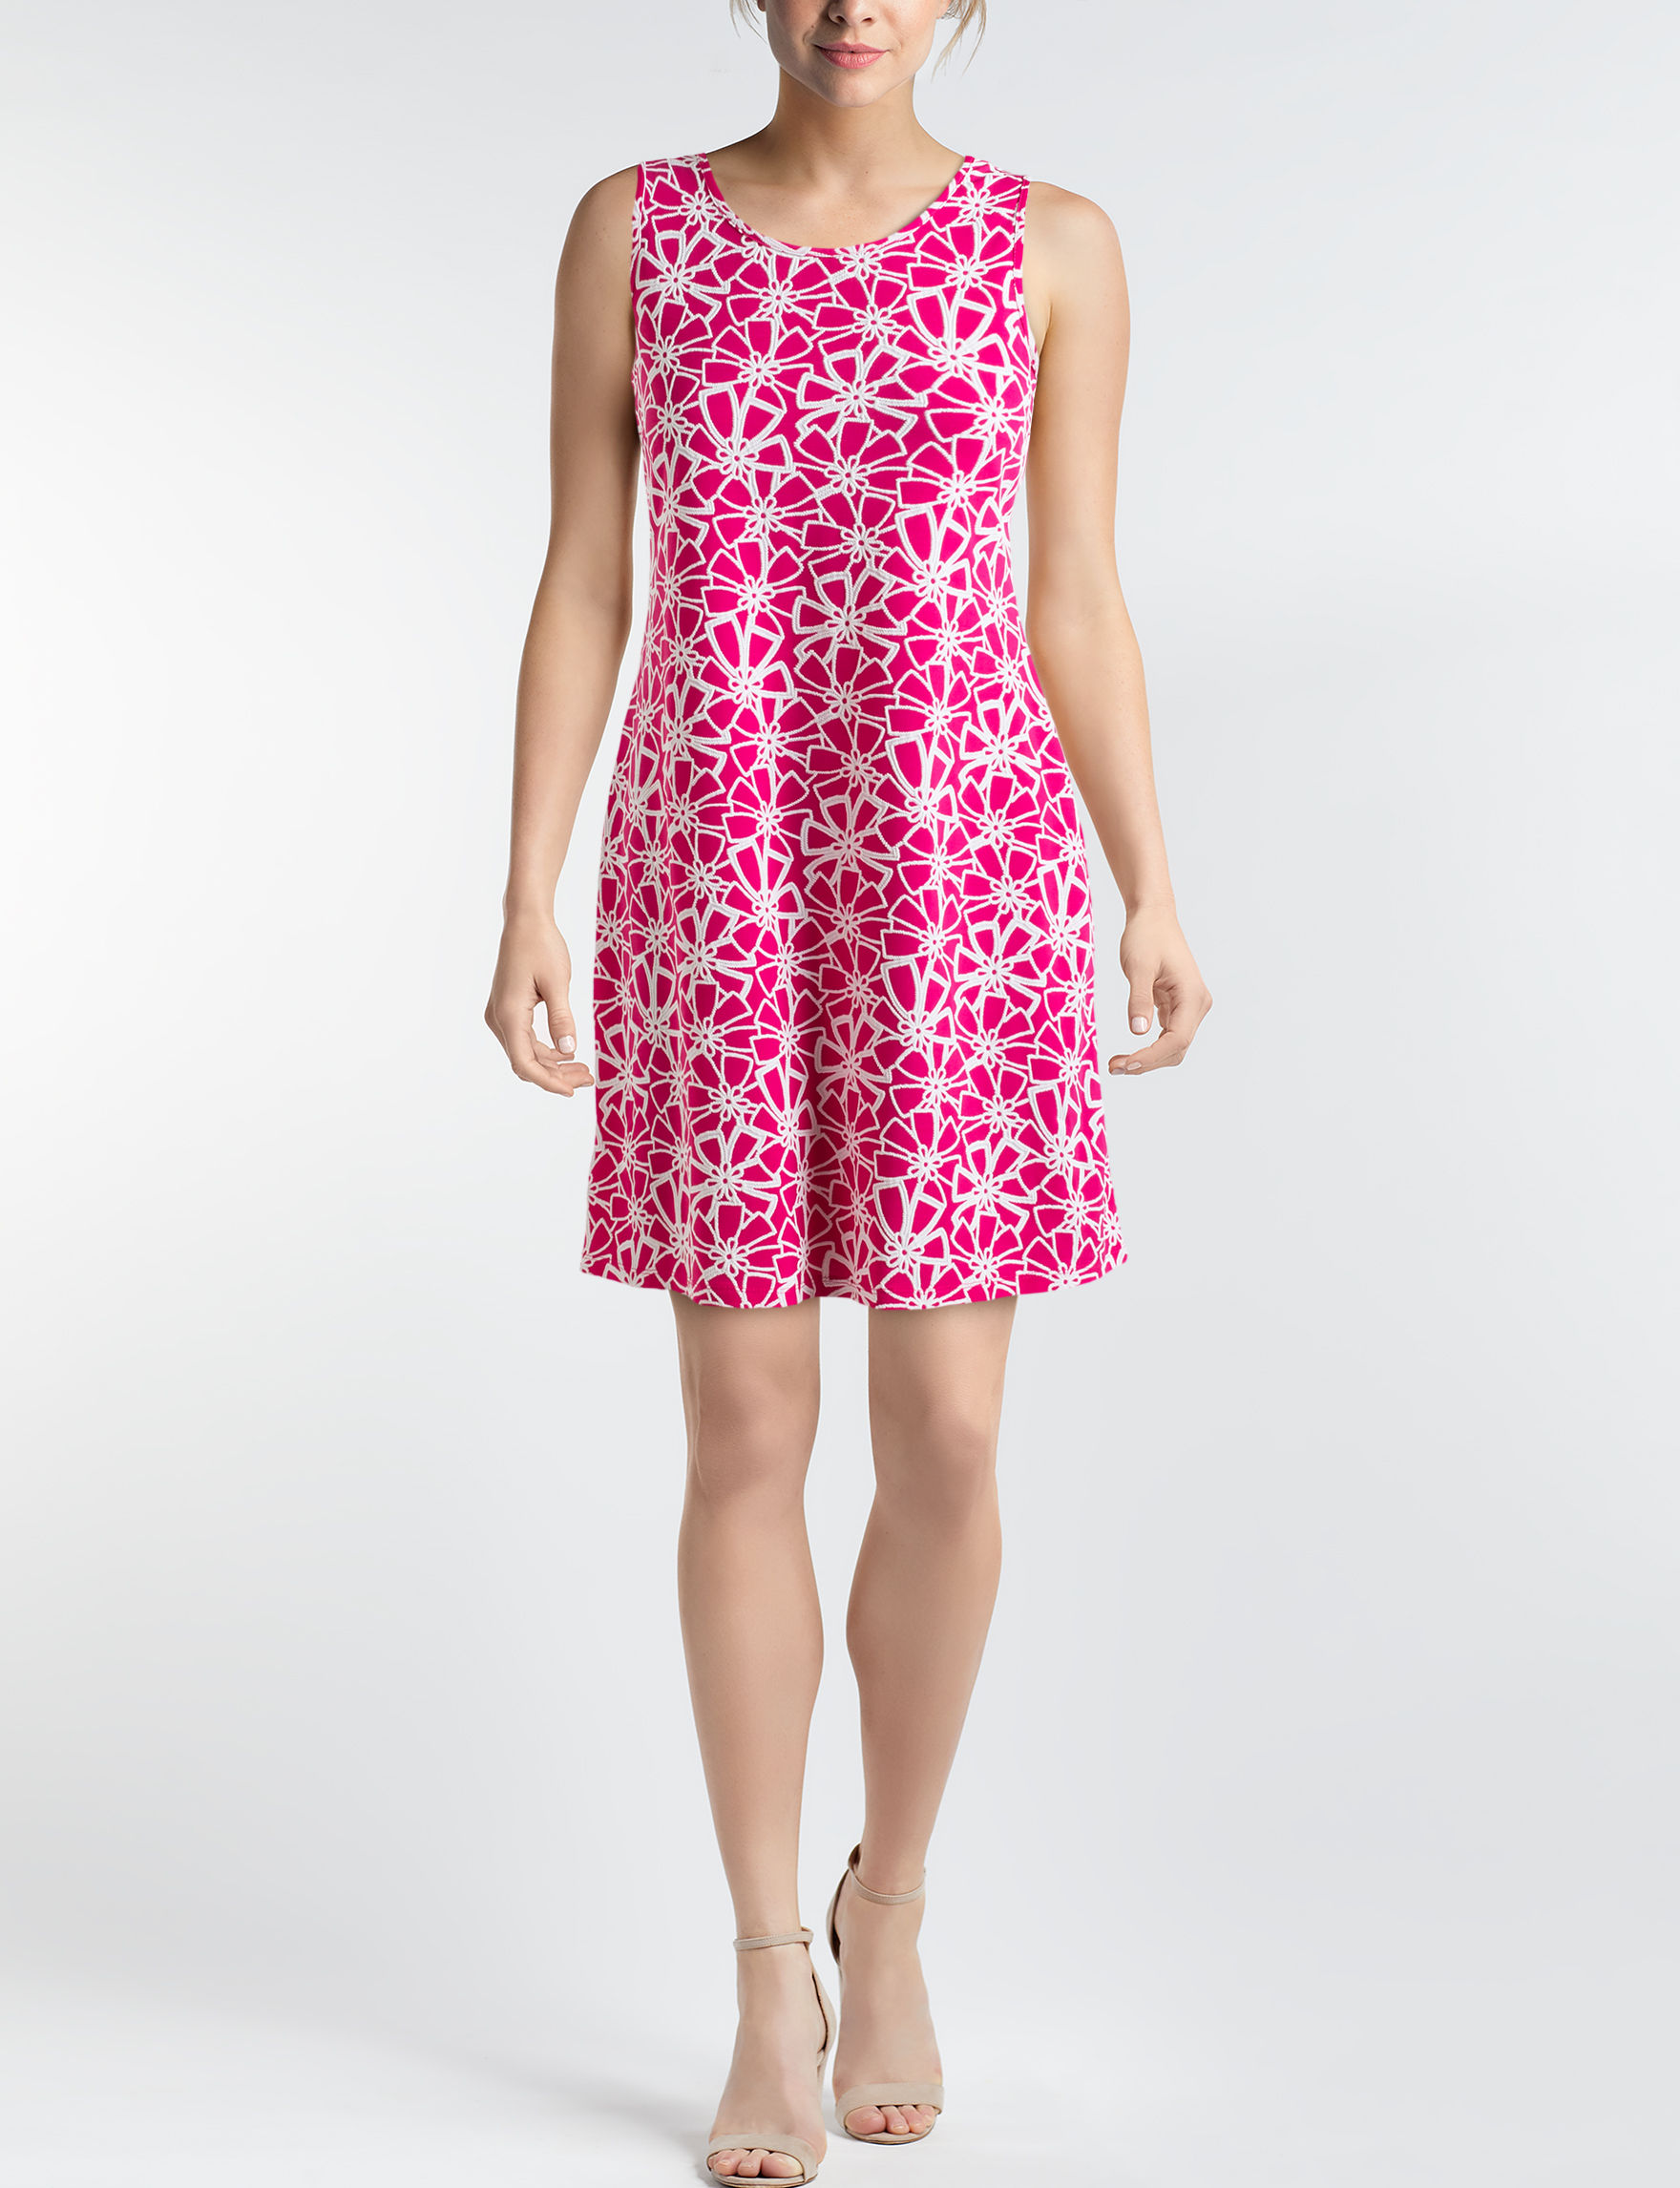 Ronni Nicole Fuschia / White Everyday & Casual A-line Dresses Fit & Flare Dresses